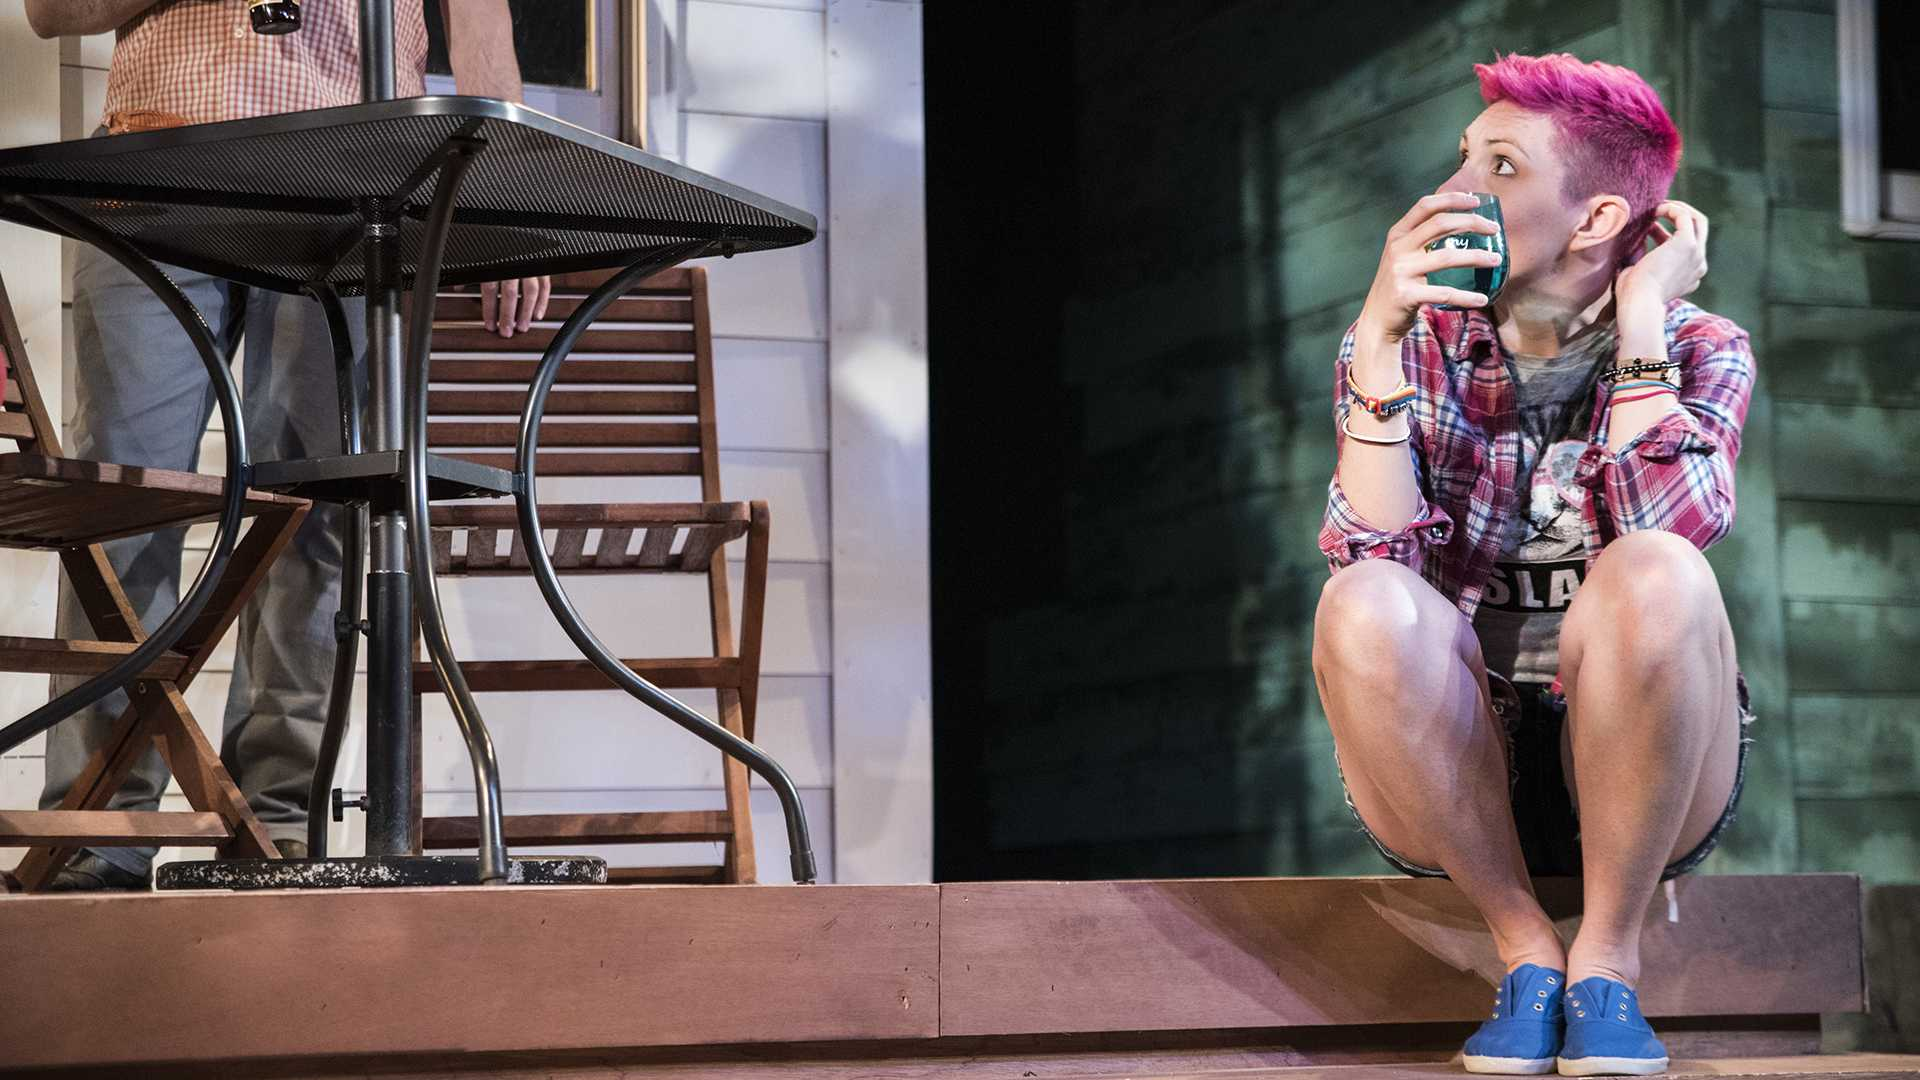 The character Mary holds a drink on stage during a dress rehearsal for the play Detroit at Riverside Theatre on Wednesday, Jan. 17, 2018. The play, written by Lisa D'Amour and directed by Angie Toomsen, was a finalist for the Pulitzer Prize and on the New York Times list for top ten plays of 2012. (Ben Allan Smith/The Daily Iowan)